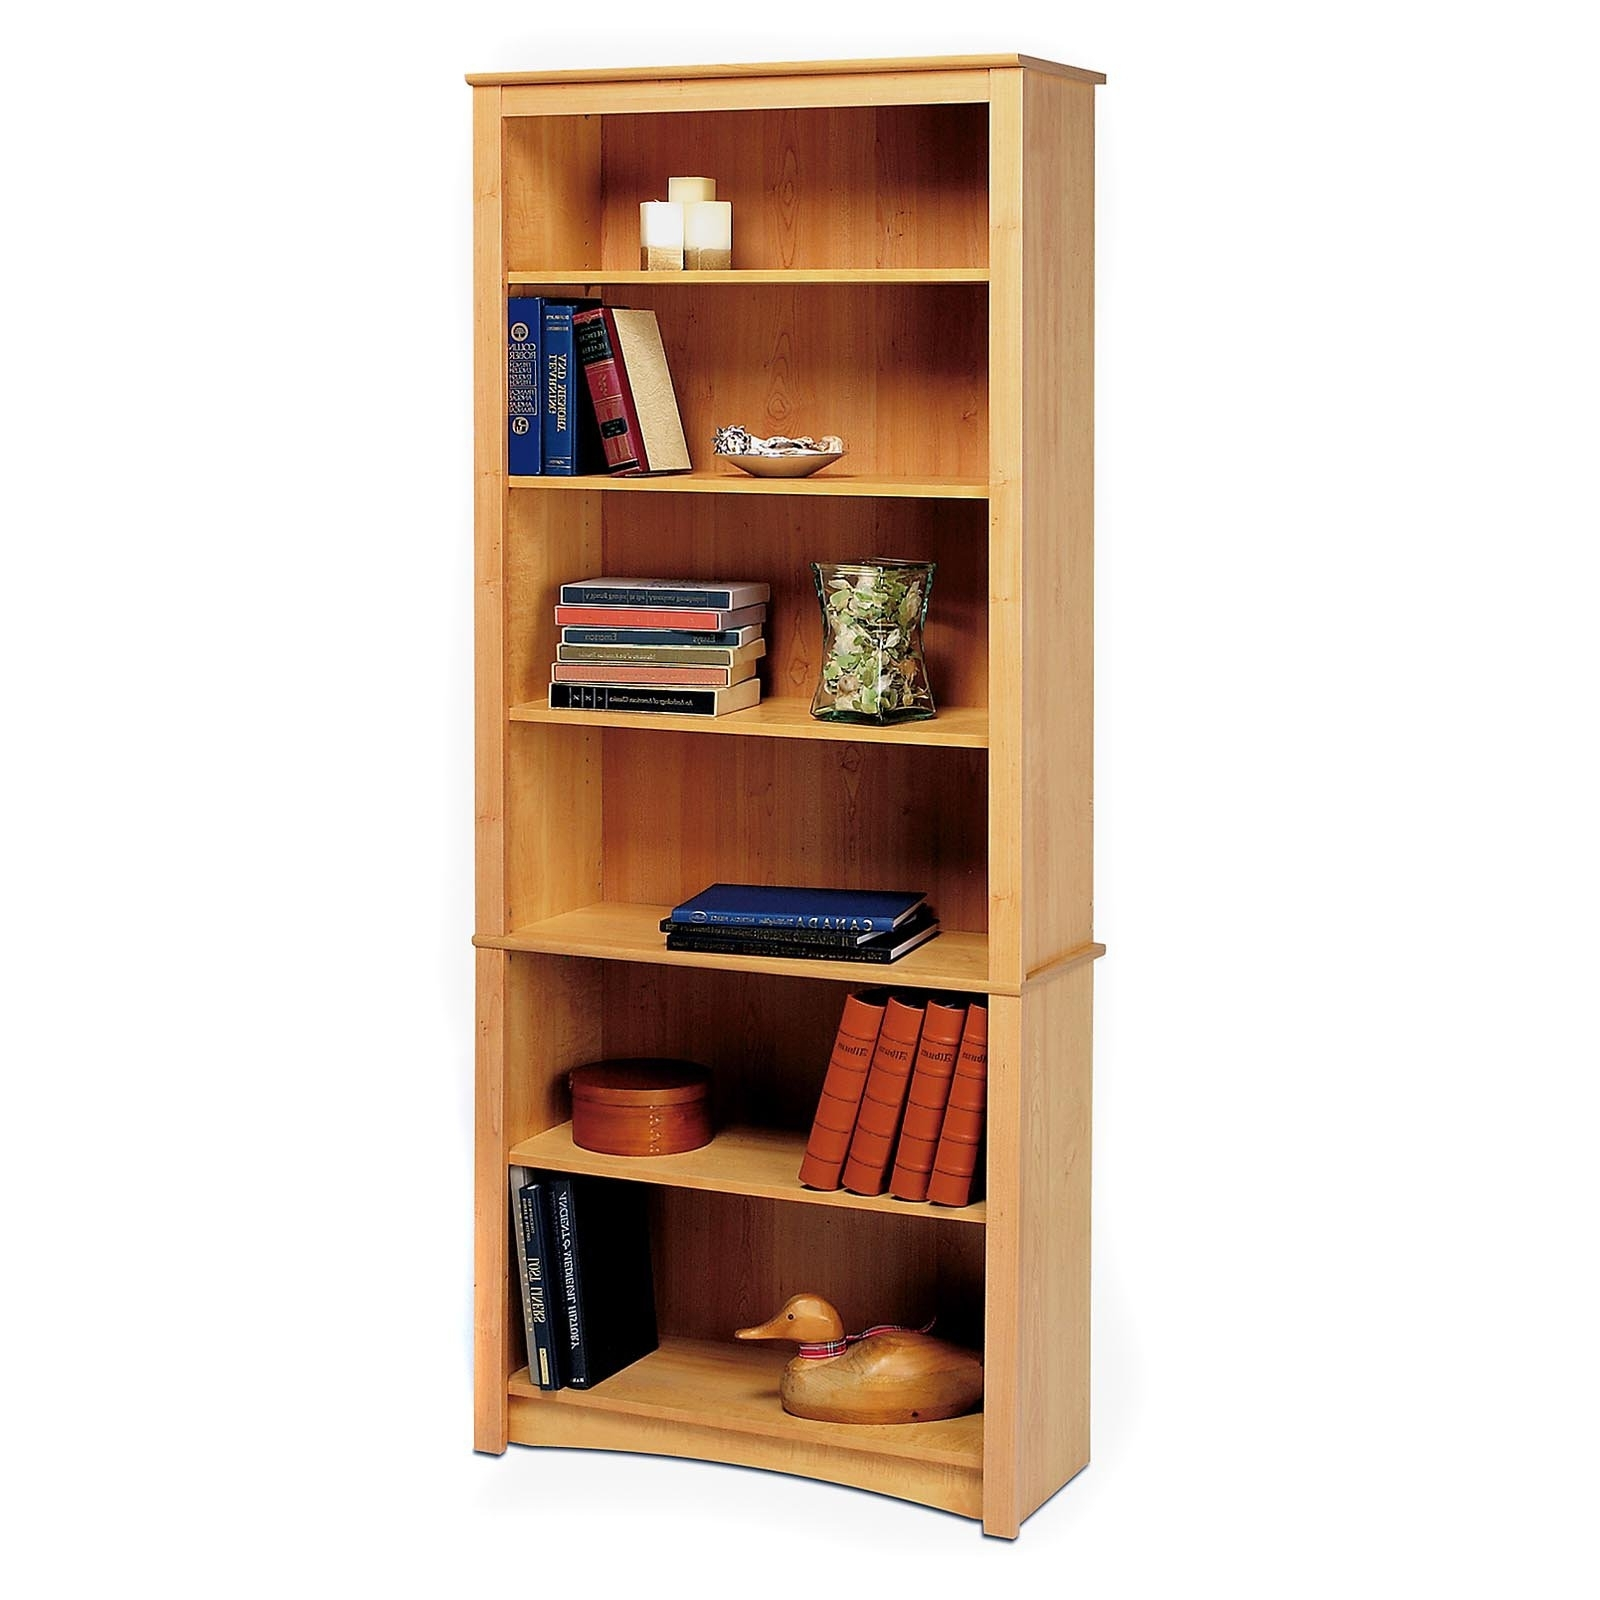 6 Shelf Bookcases With Well Liked Chris Book Shelf The Wood Whisperer ~ Idolza (Gallery 9 of 15)